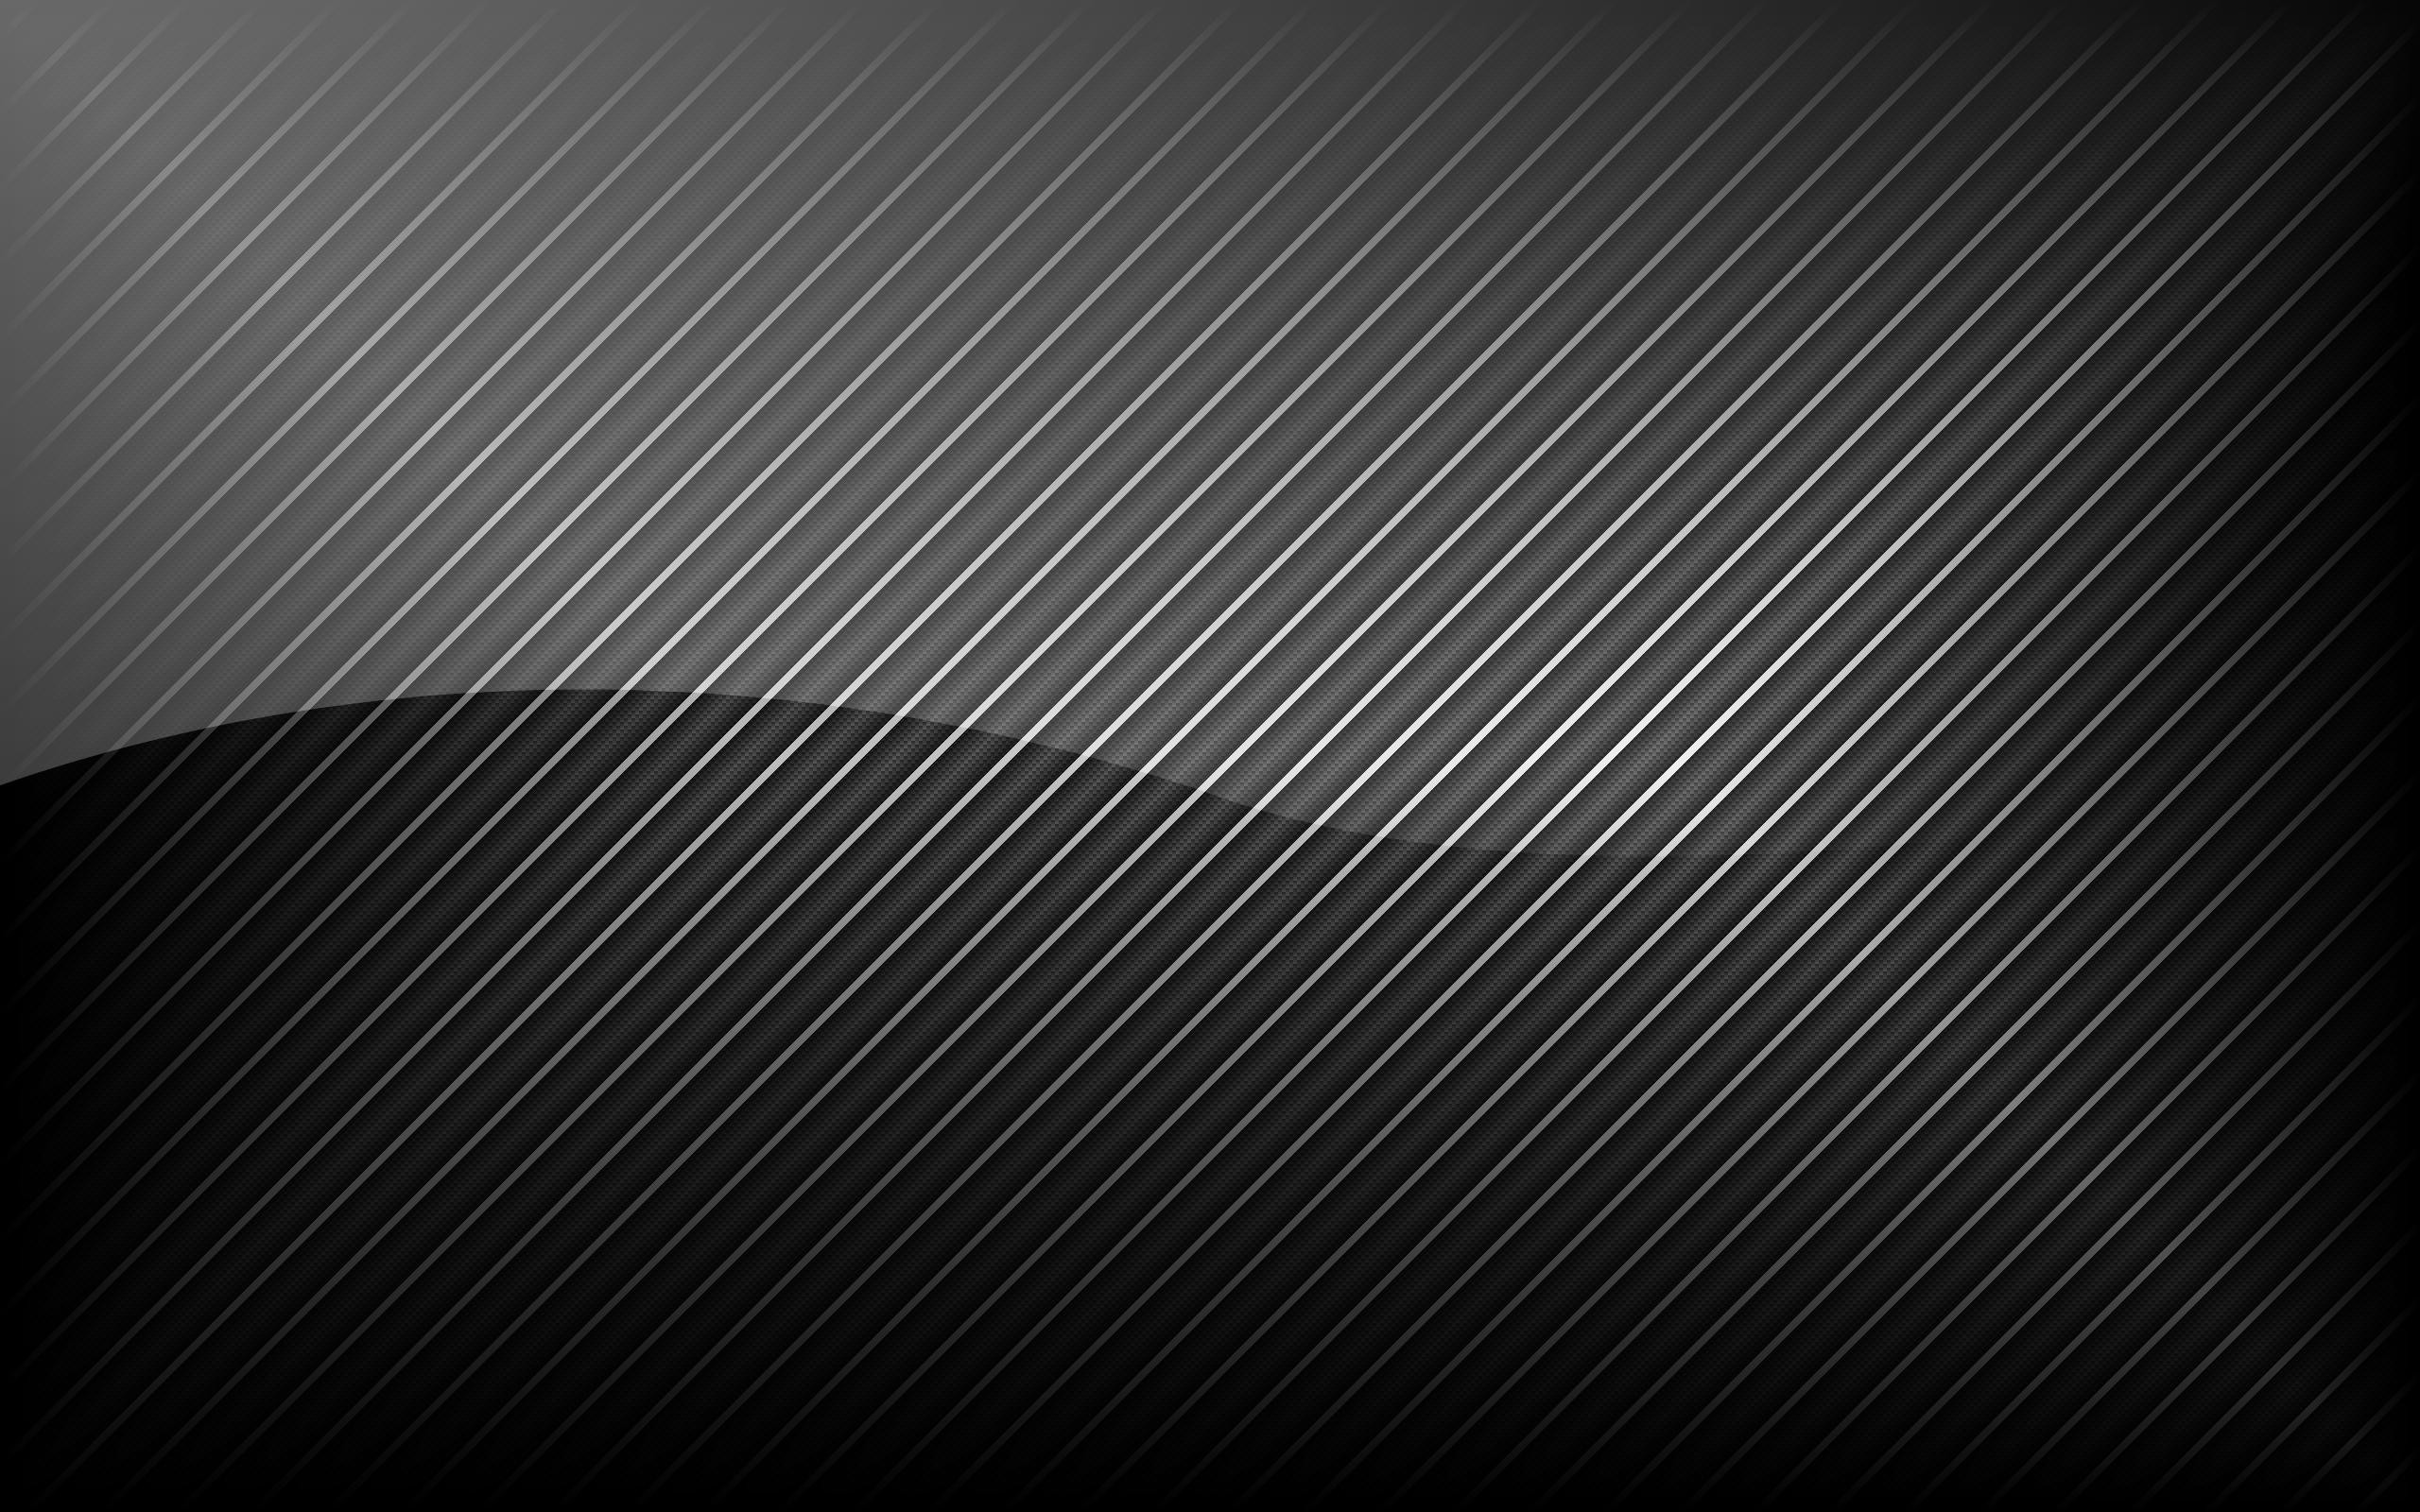 The Most Awesome along with Gorgeous carbon fiber iphone wallpaper